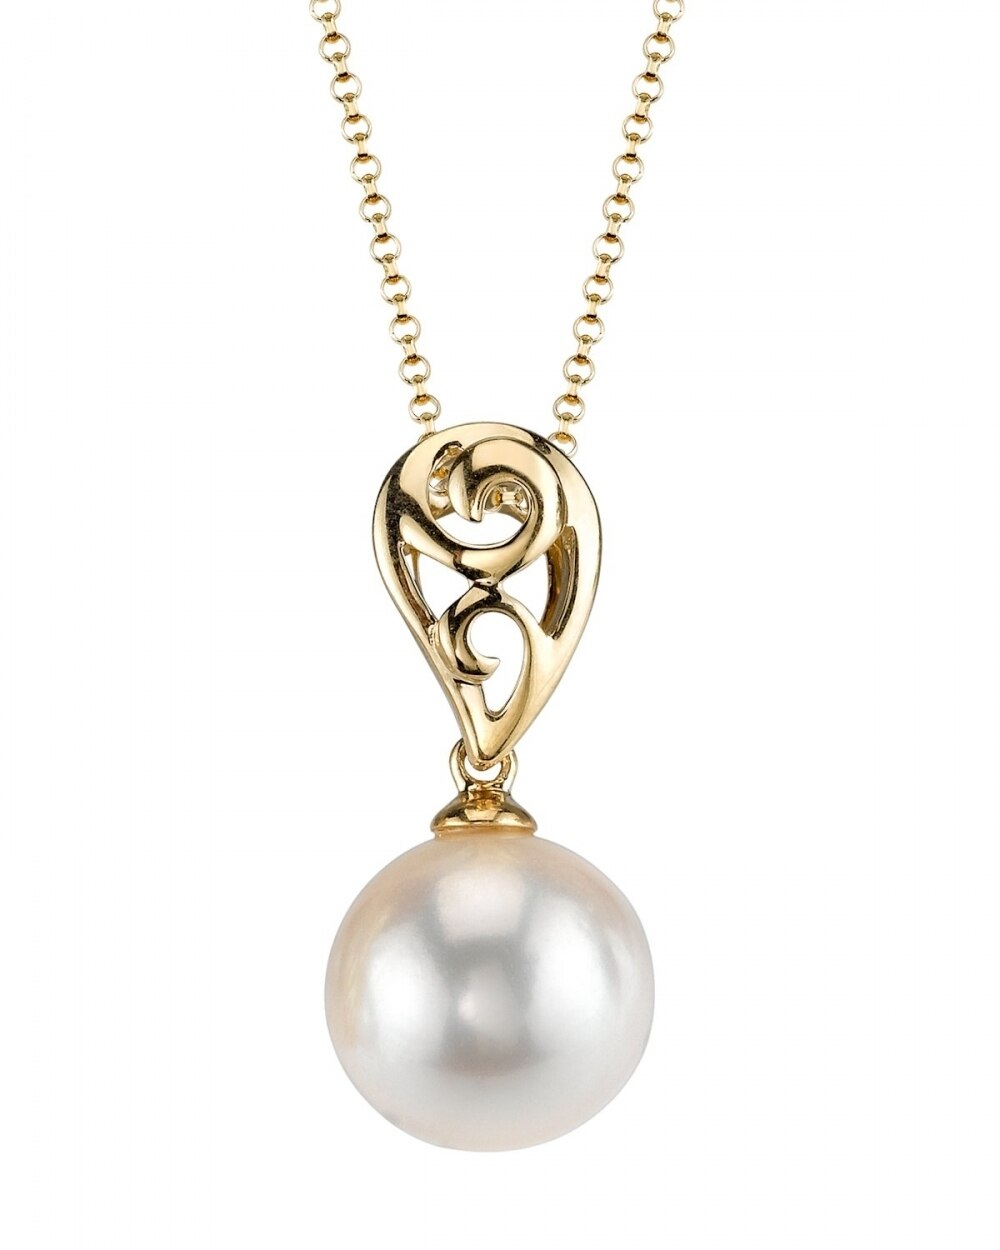 This classic pendant features an 8.5-9.0mm Japanese Akoya Pearl, handpicked for its luminous luster